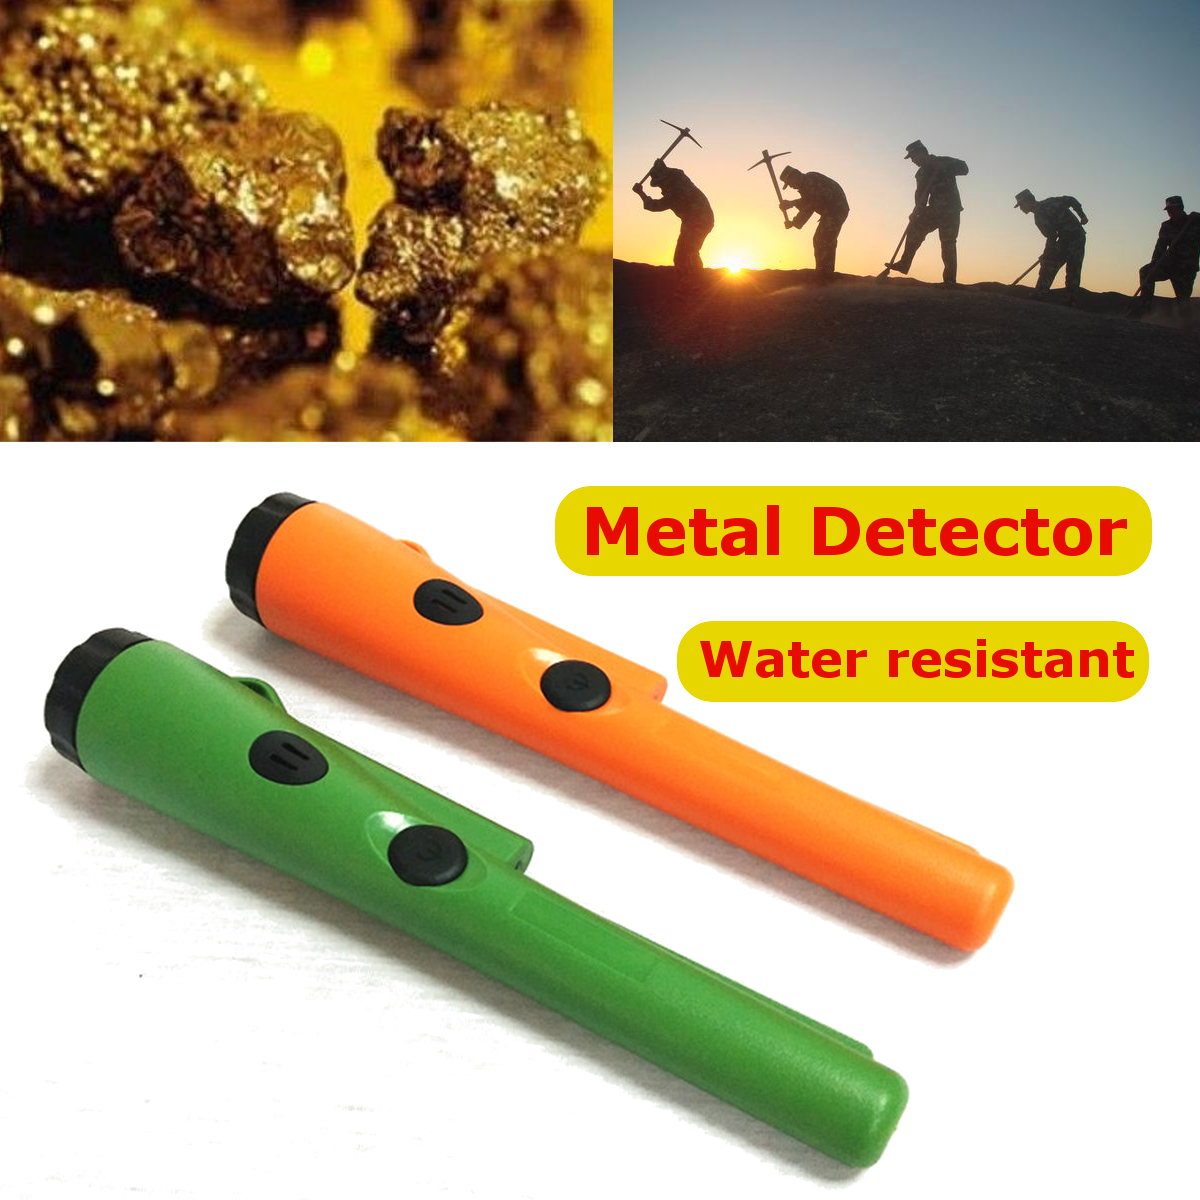 LED Pinpointer Pin Pointer Metal Detector Automatic Treasure Hunting Gold Detector Pinpointer Detector Tester Kits Waterproof underground metal detector pinpointer gold detector treasure hunter buzzer vibrate mini pin pointer led indicators belt holster